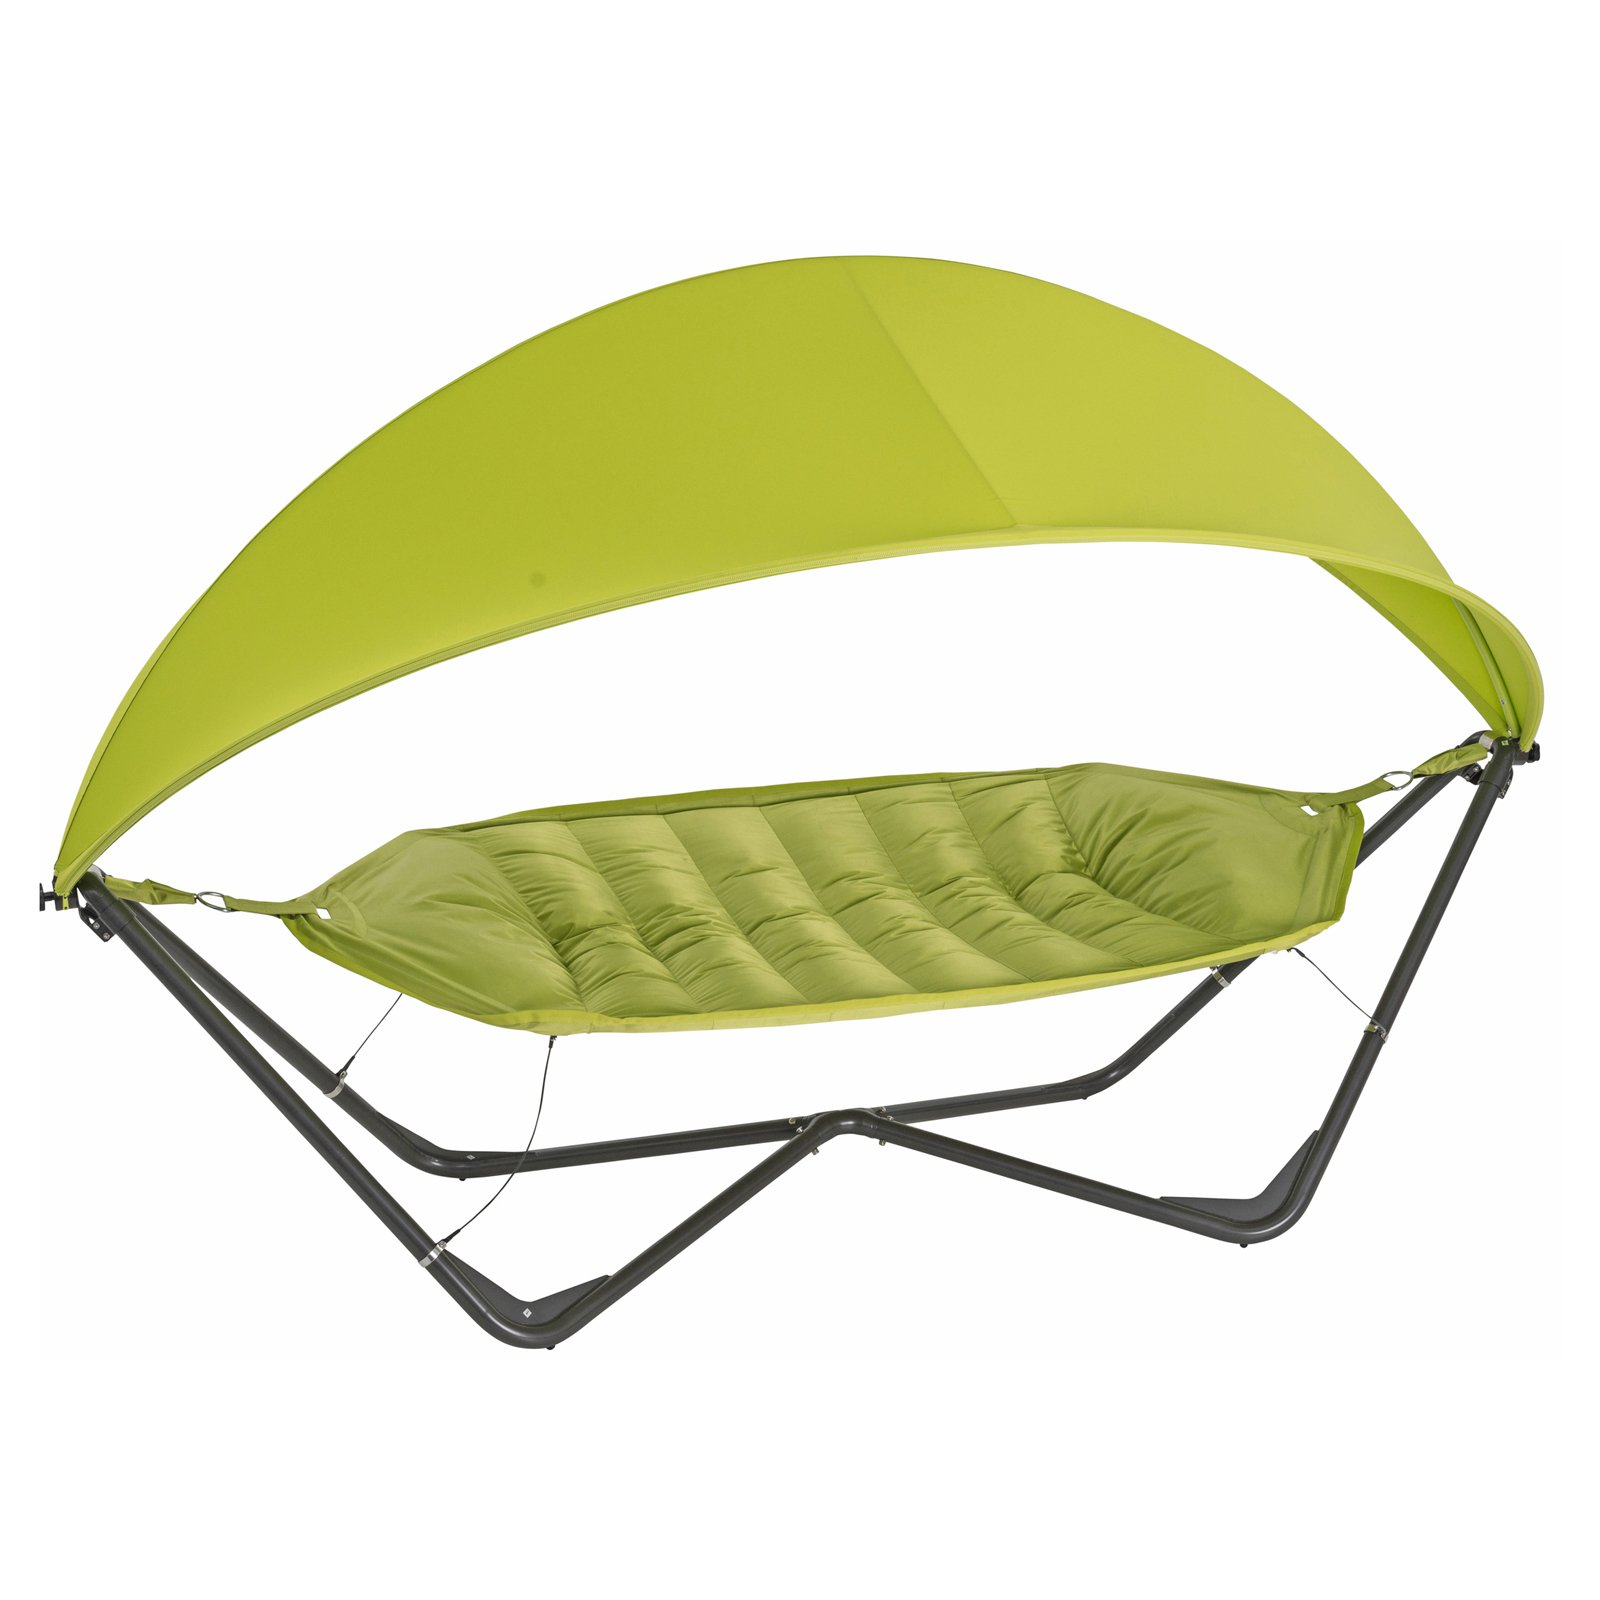 TrueShade Plus 11' x 5' Gondola Hammock with Cover, Apple Green